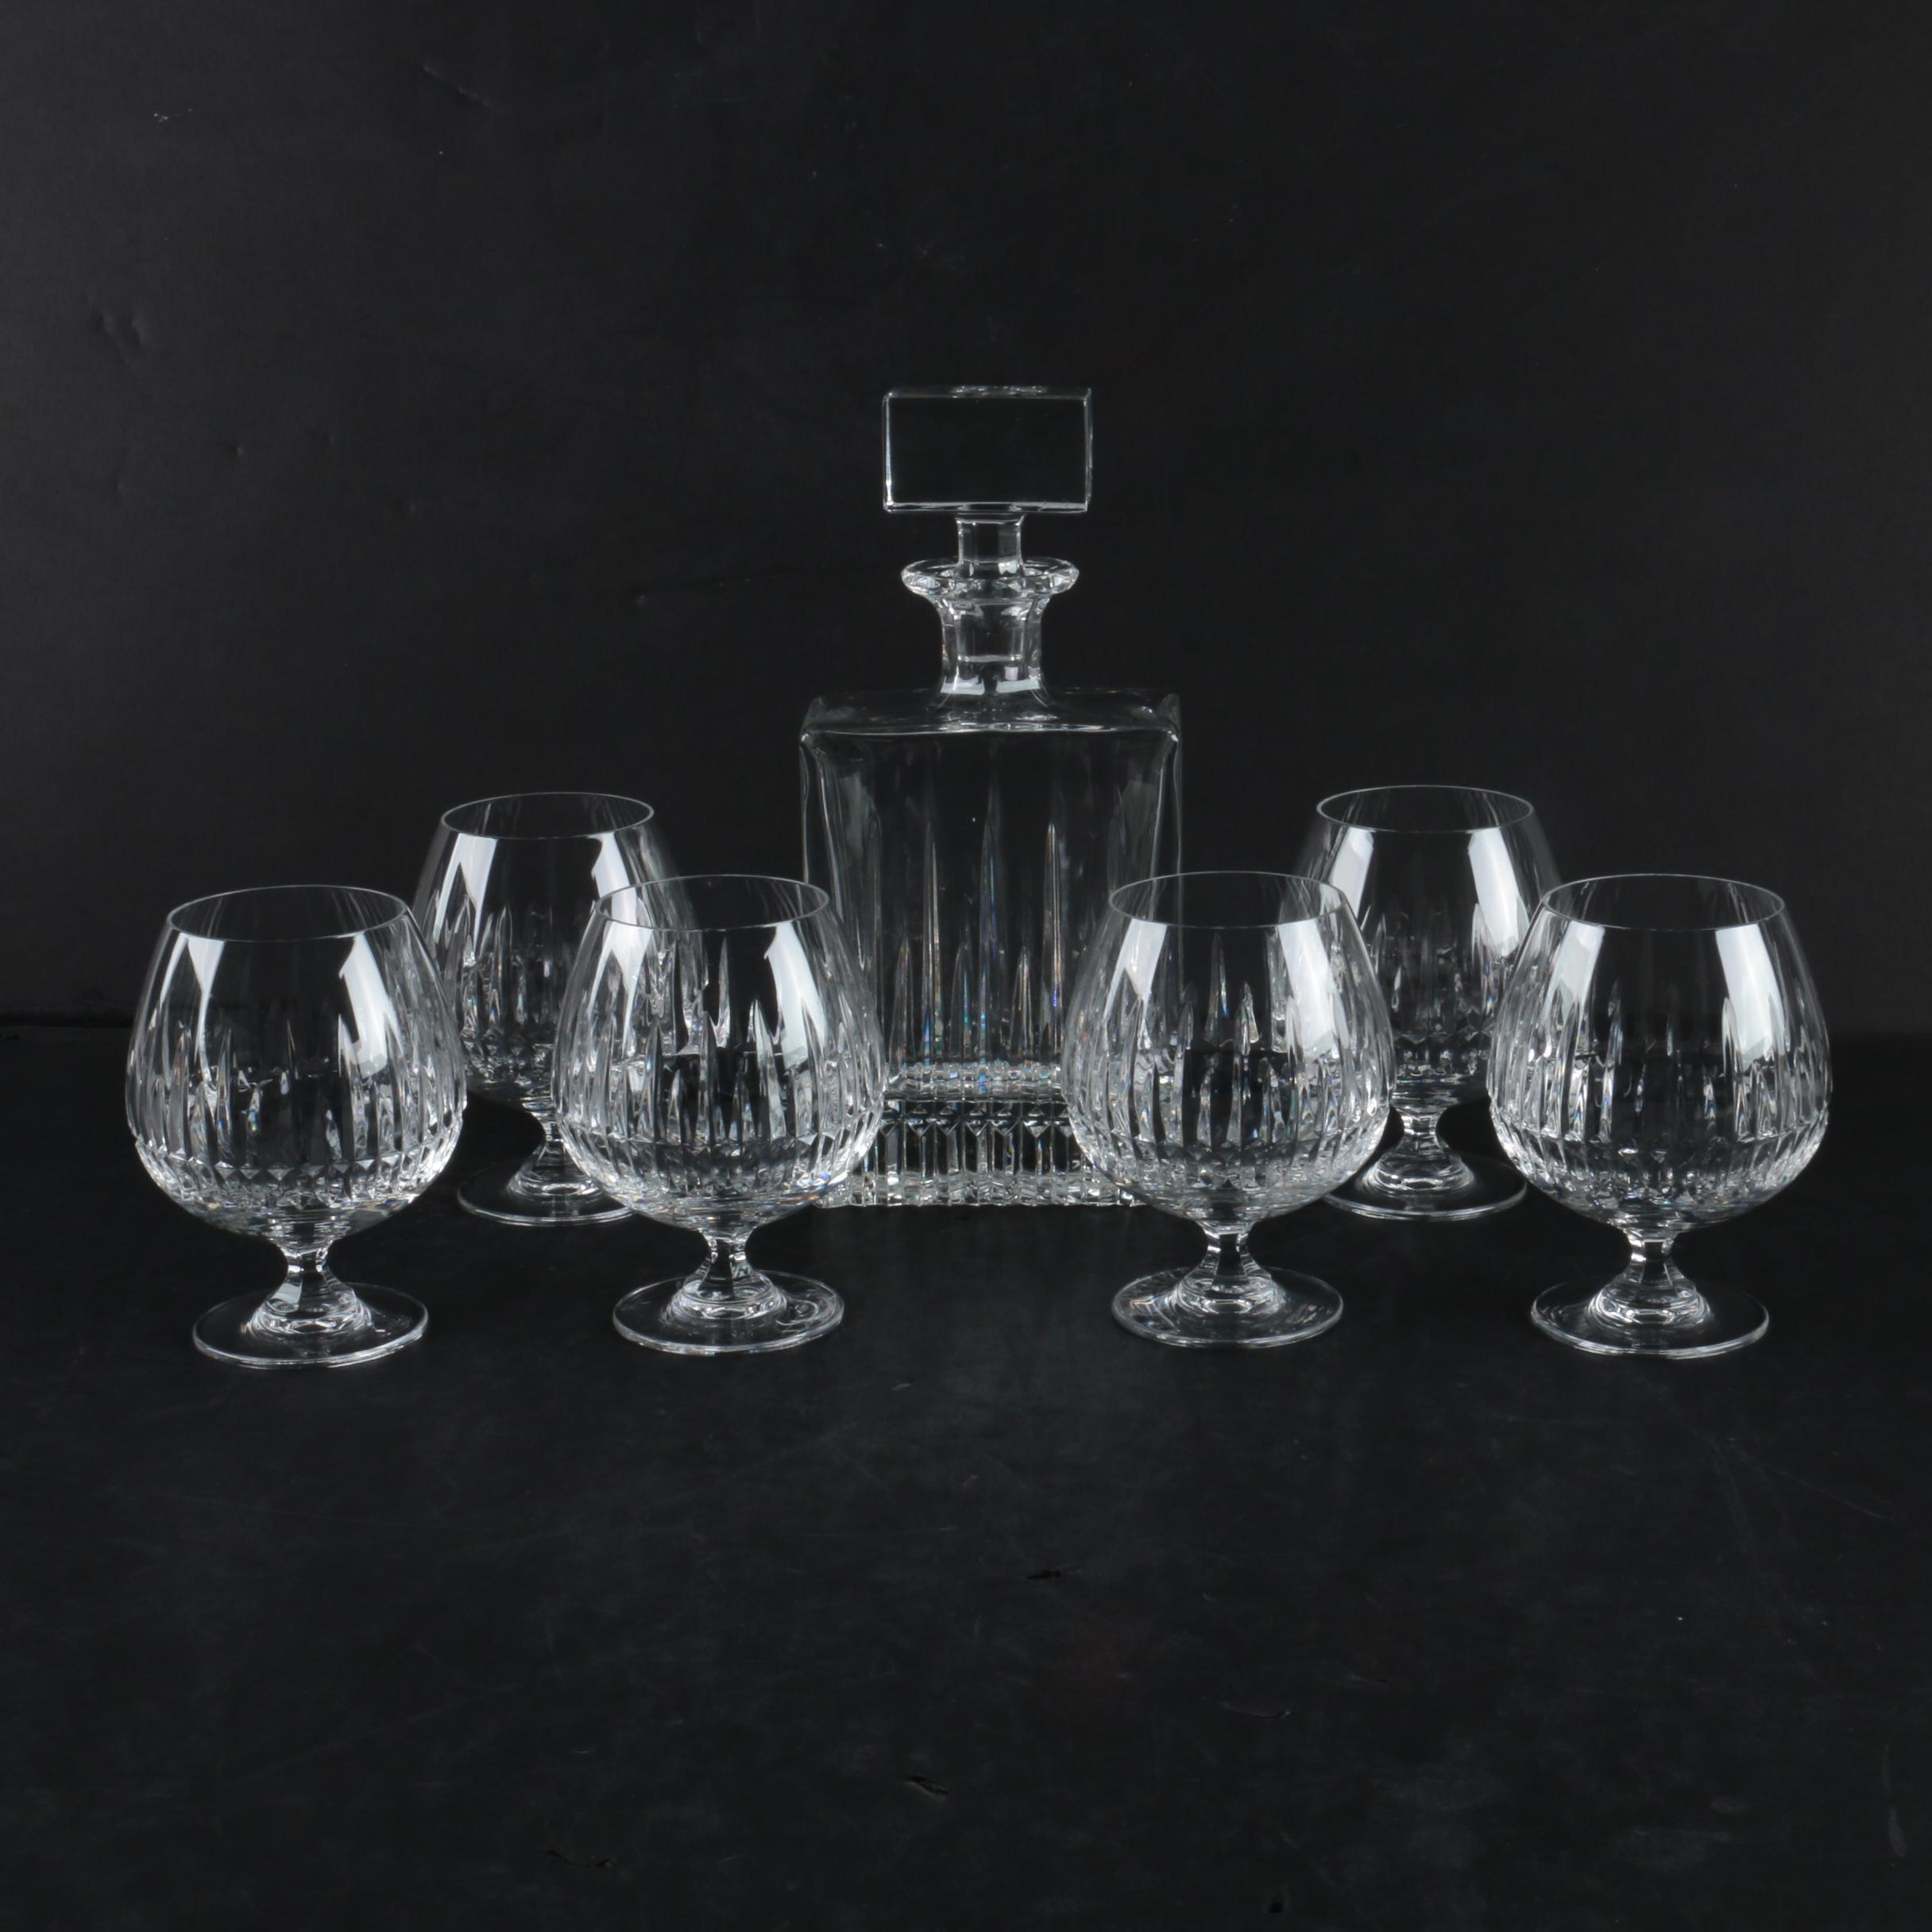 Crystal Decanter and Brandy Snifters